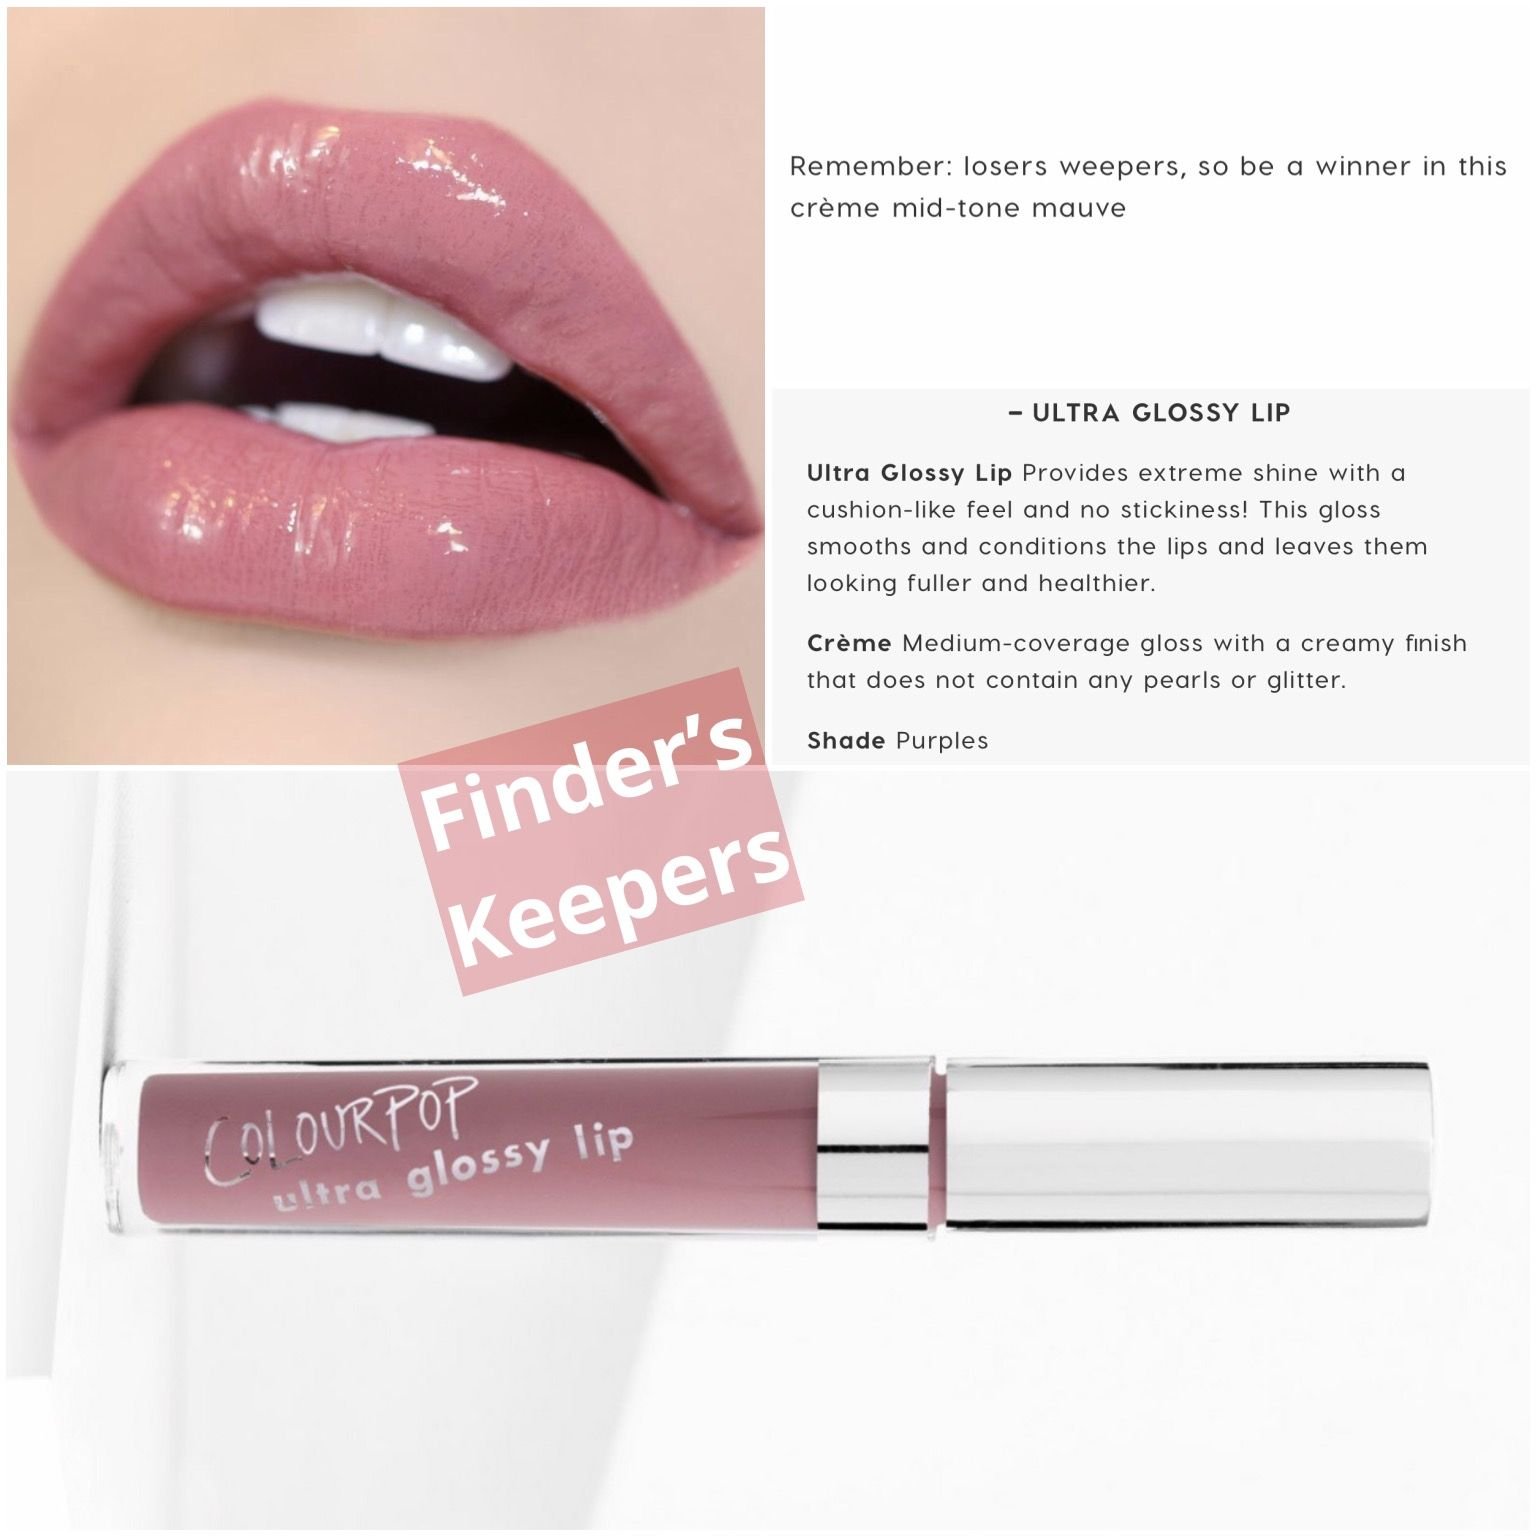 Finder S Keepers Ultra Glossy Lip Colourpop Colourpop